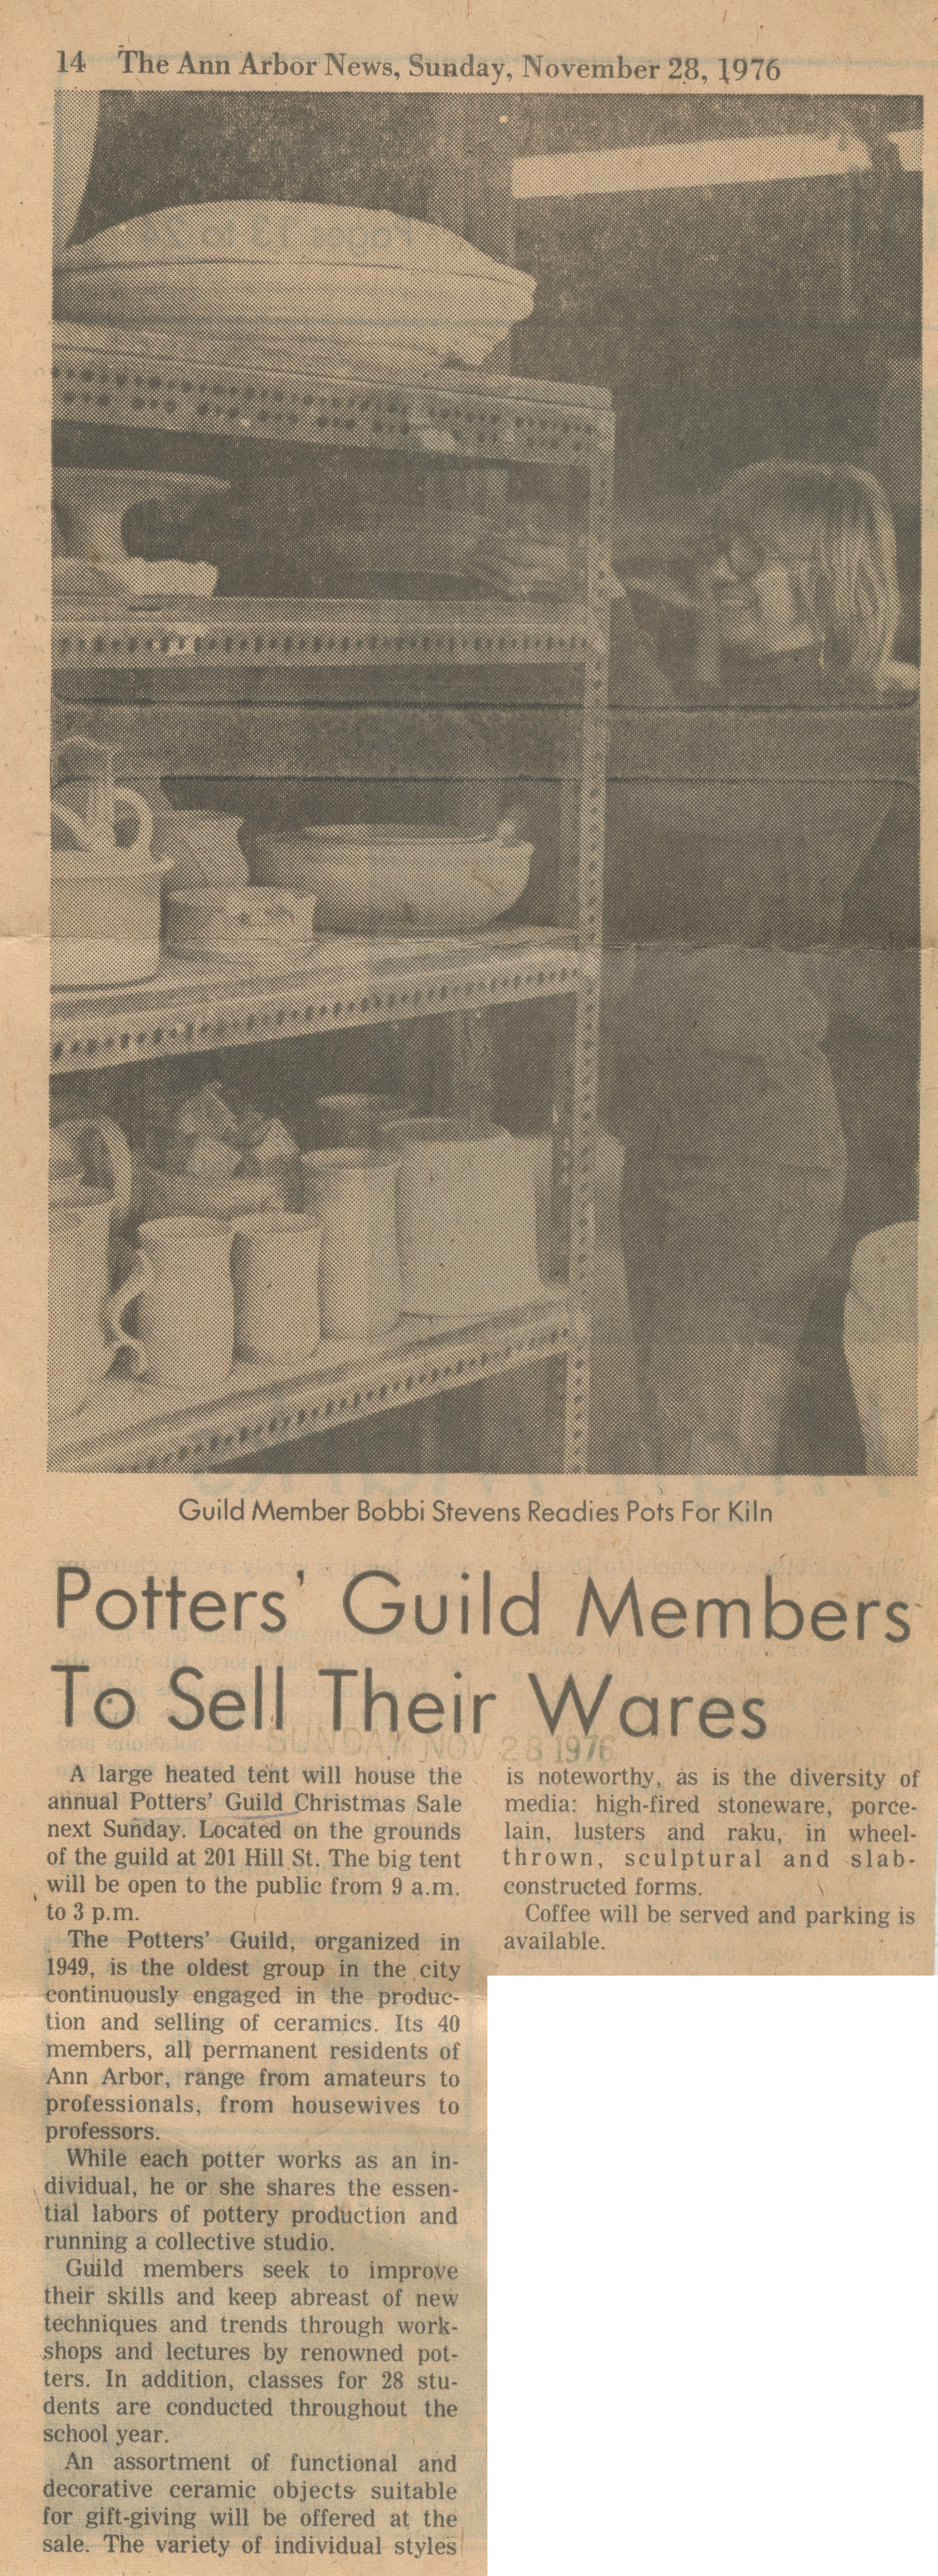 Potters' Guild Members To Sell Their Wares image